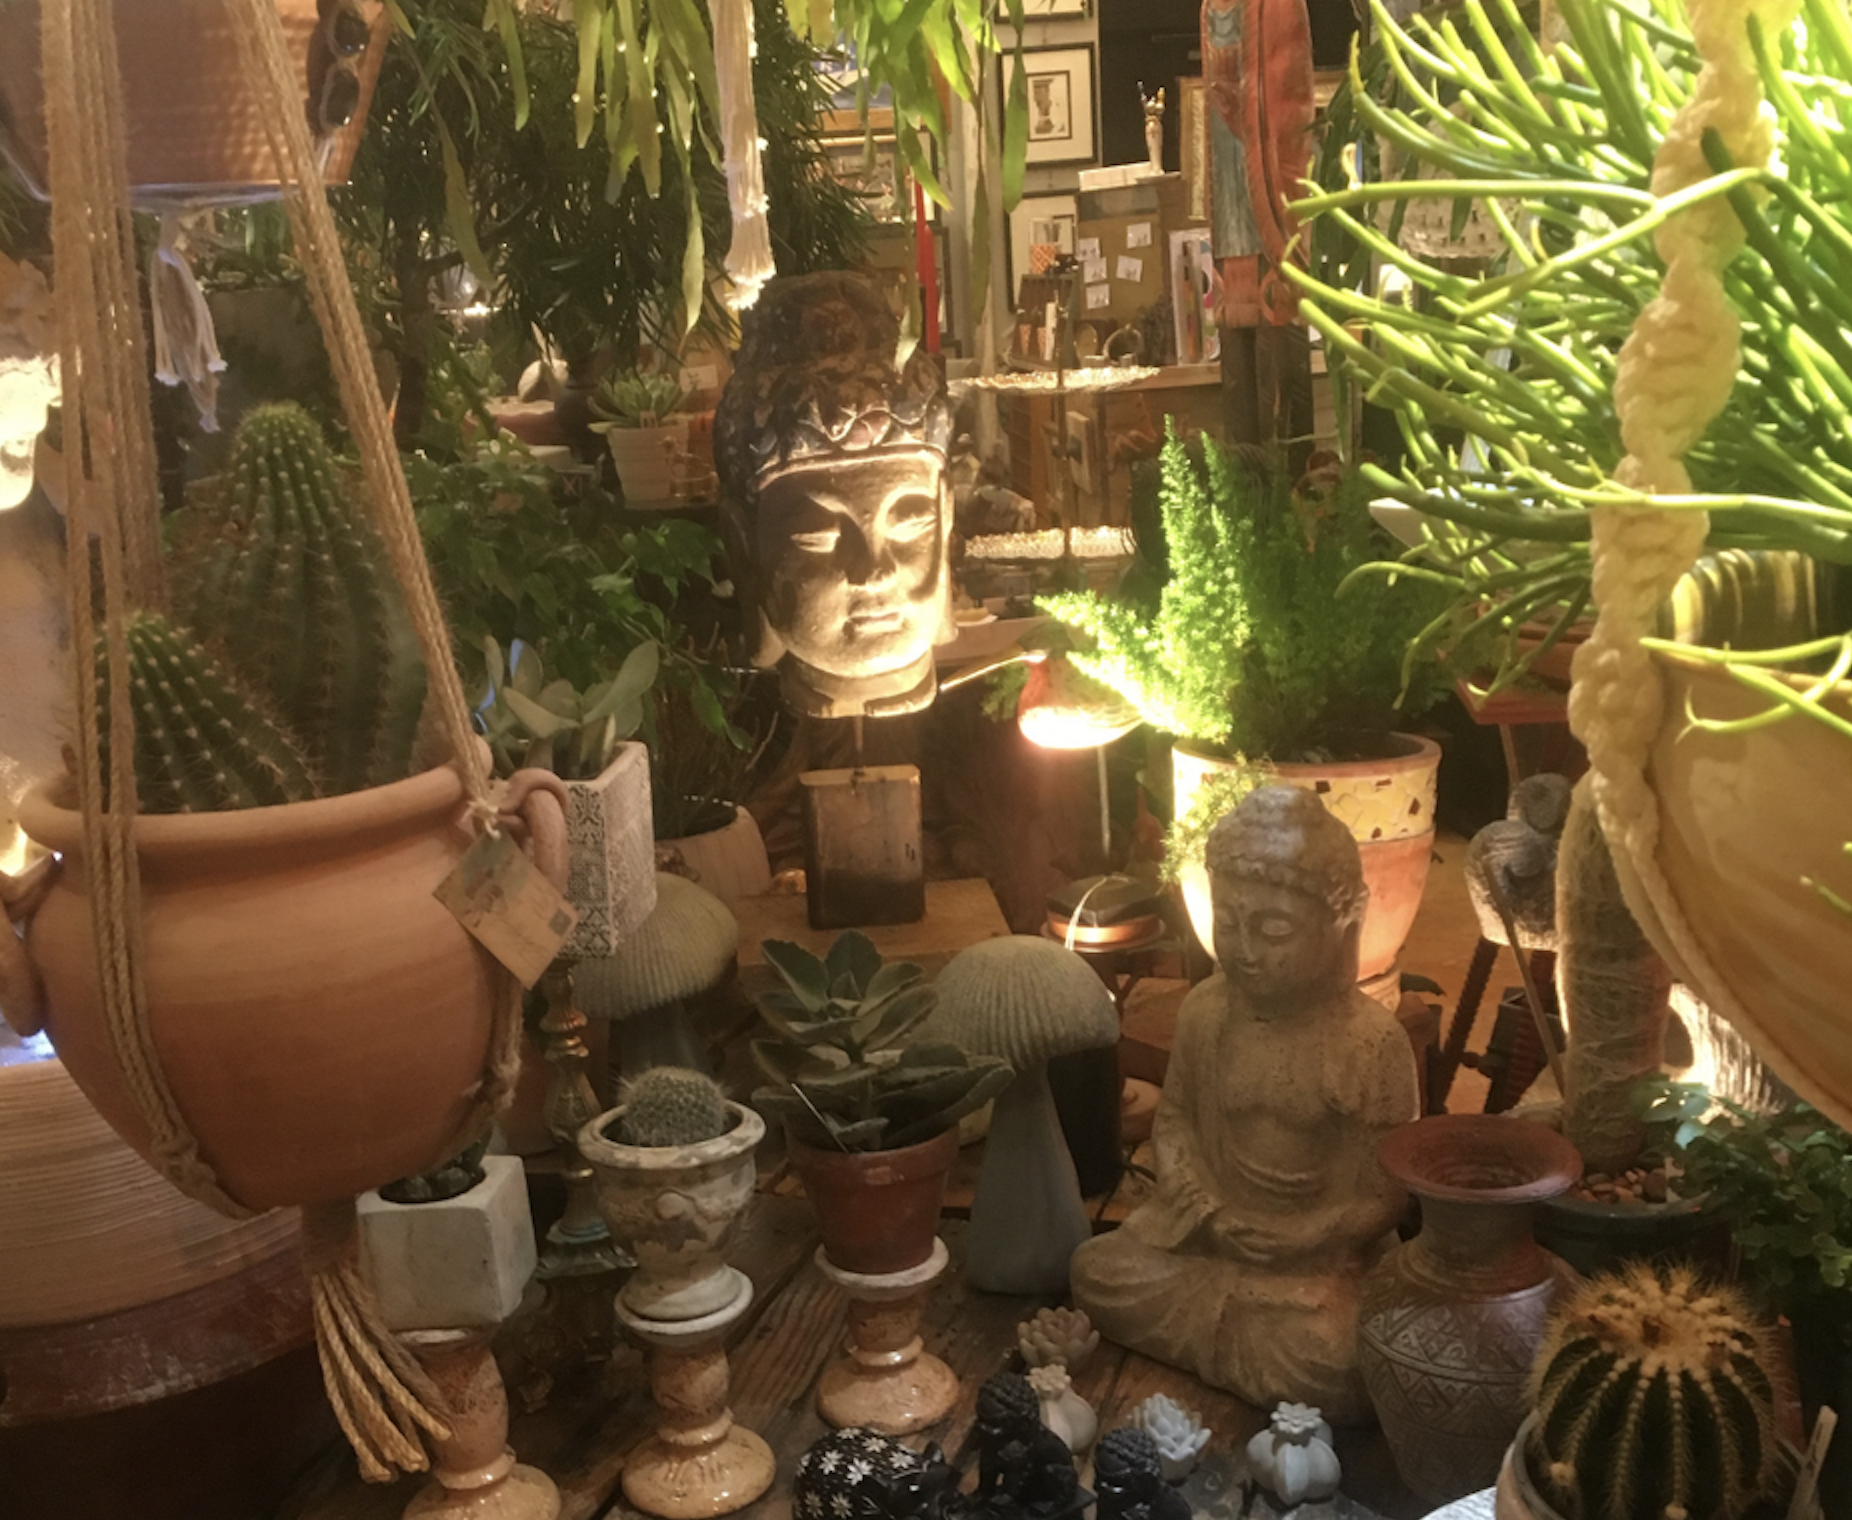 Houseplants & garden accessories -